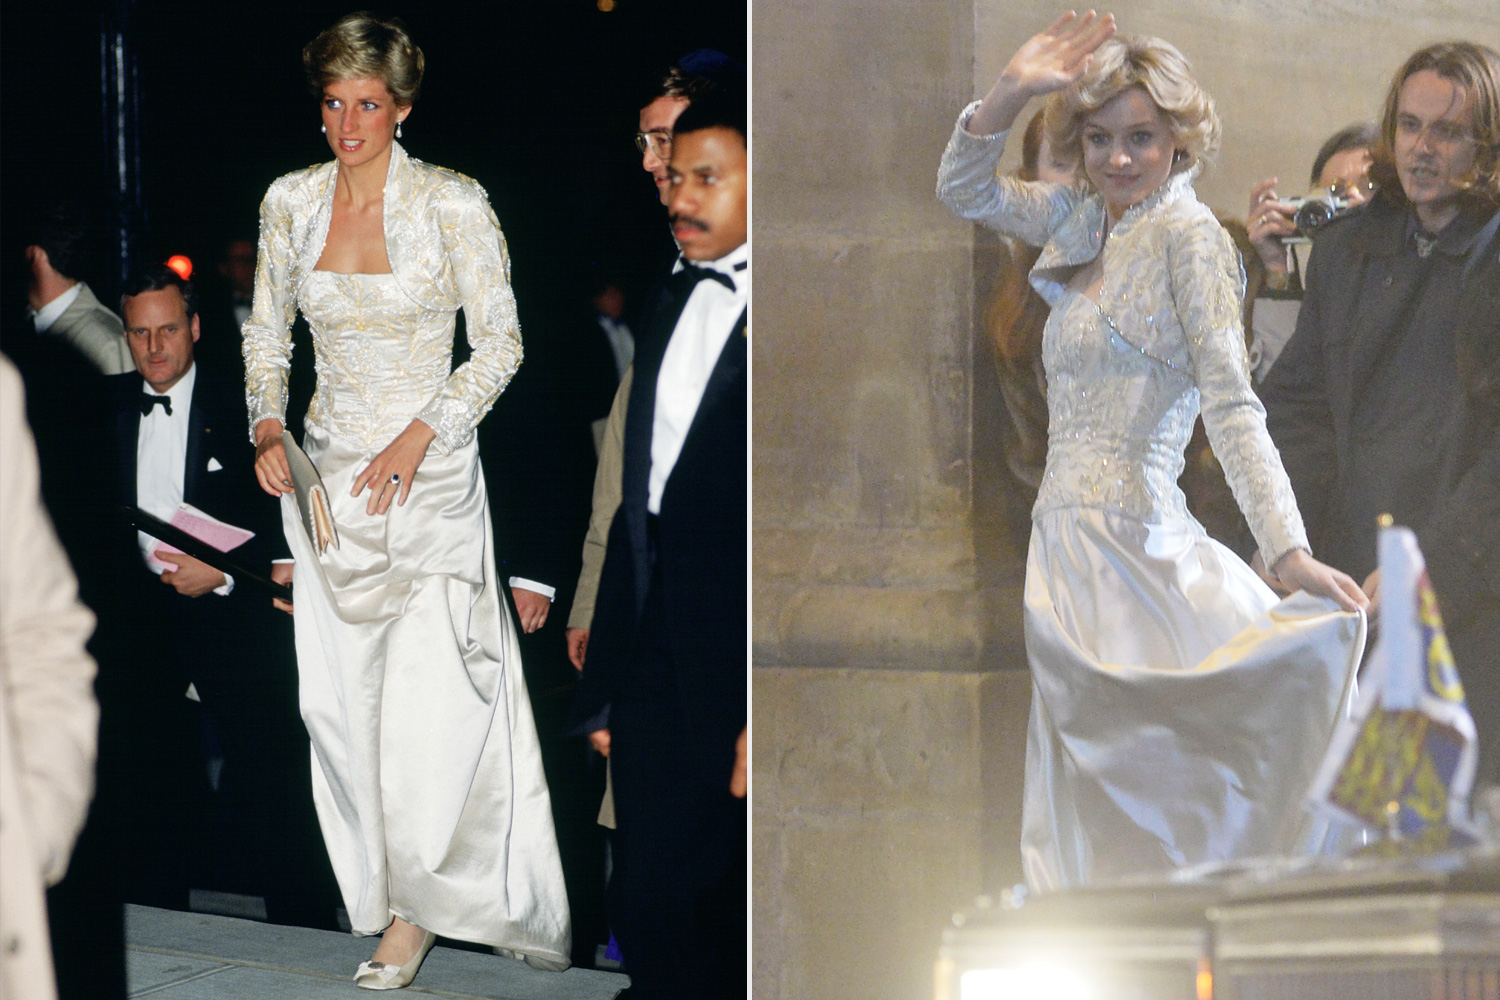 Diana, Princess of Wales wears a dress designed by Victor Edelstein to the Brooklyn Academy of Music to see the Welsh National Opera Gala production of 'Falstaff Emma Corrin The Crown